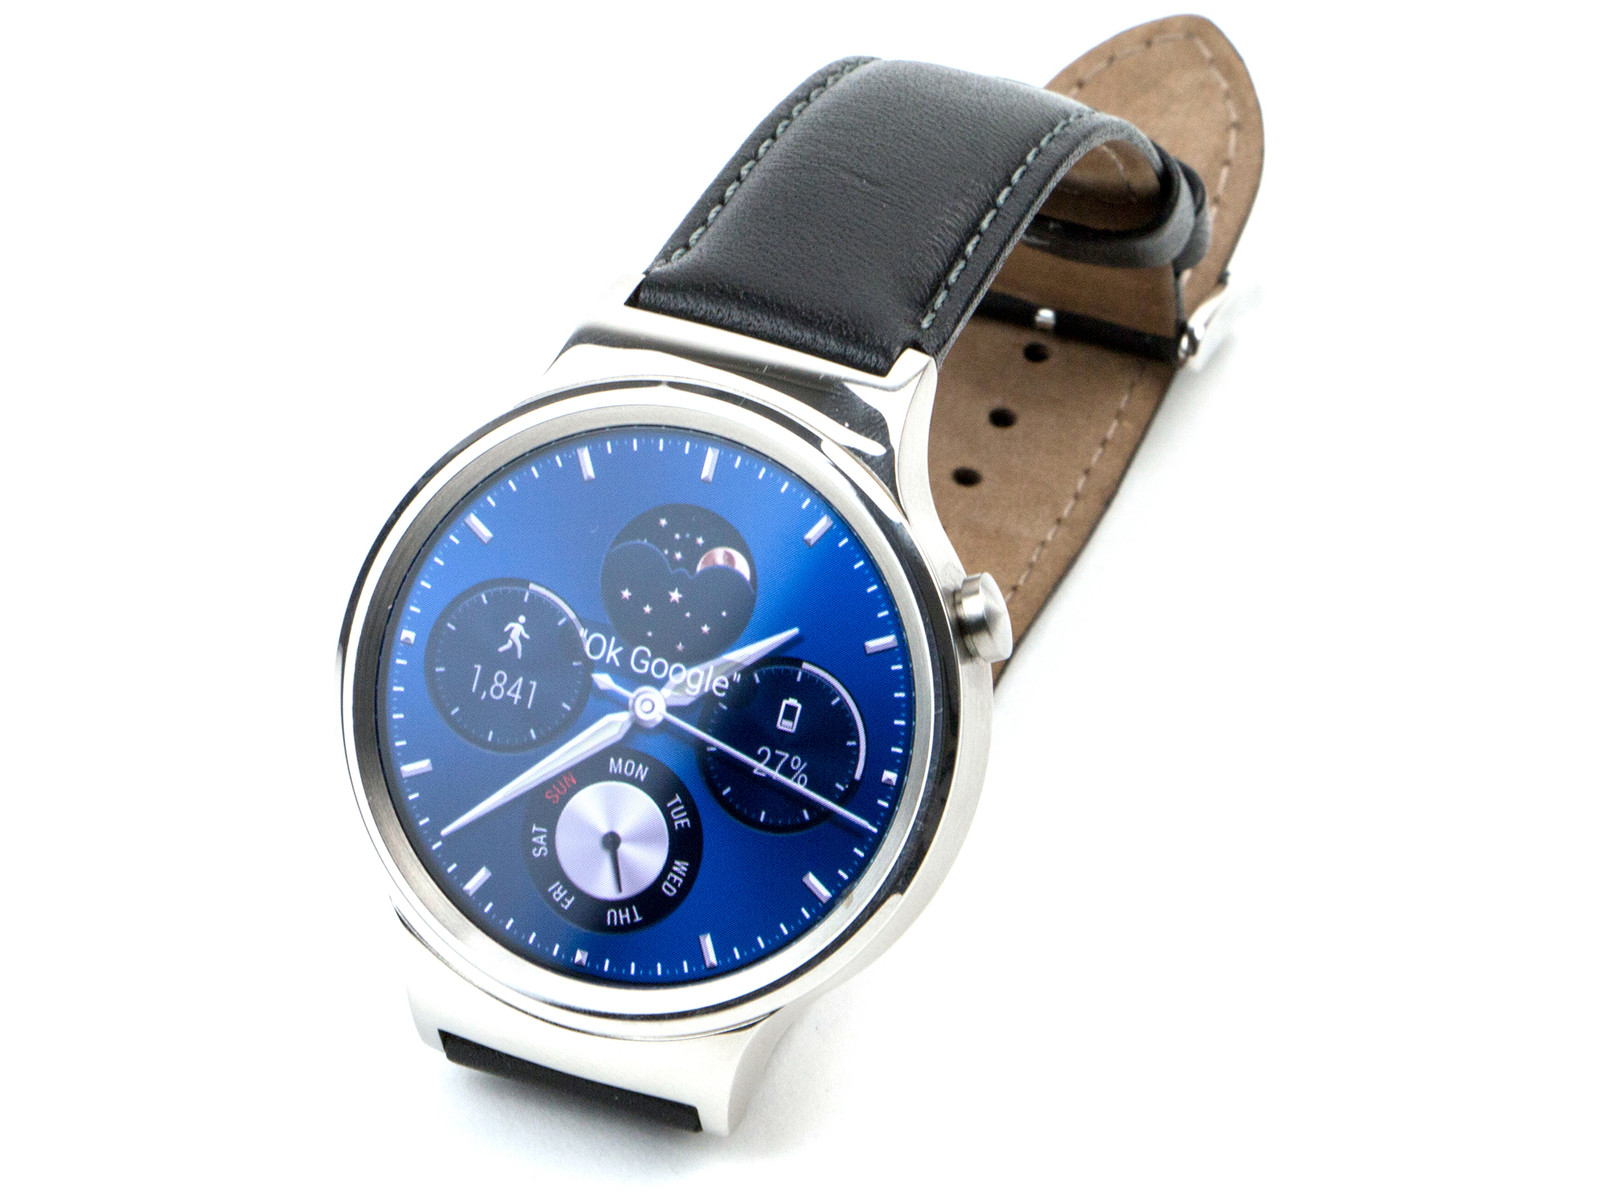 Huawei Watch Smartwatch Review